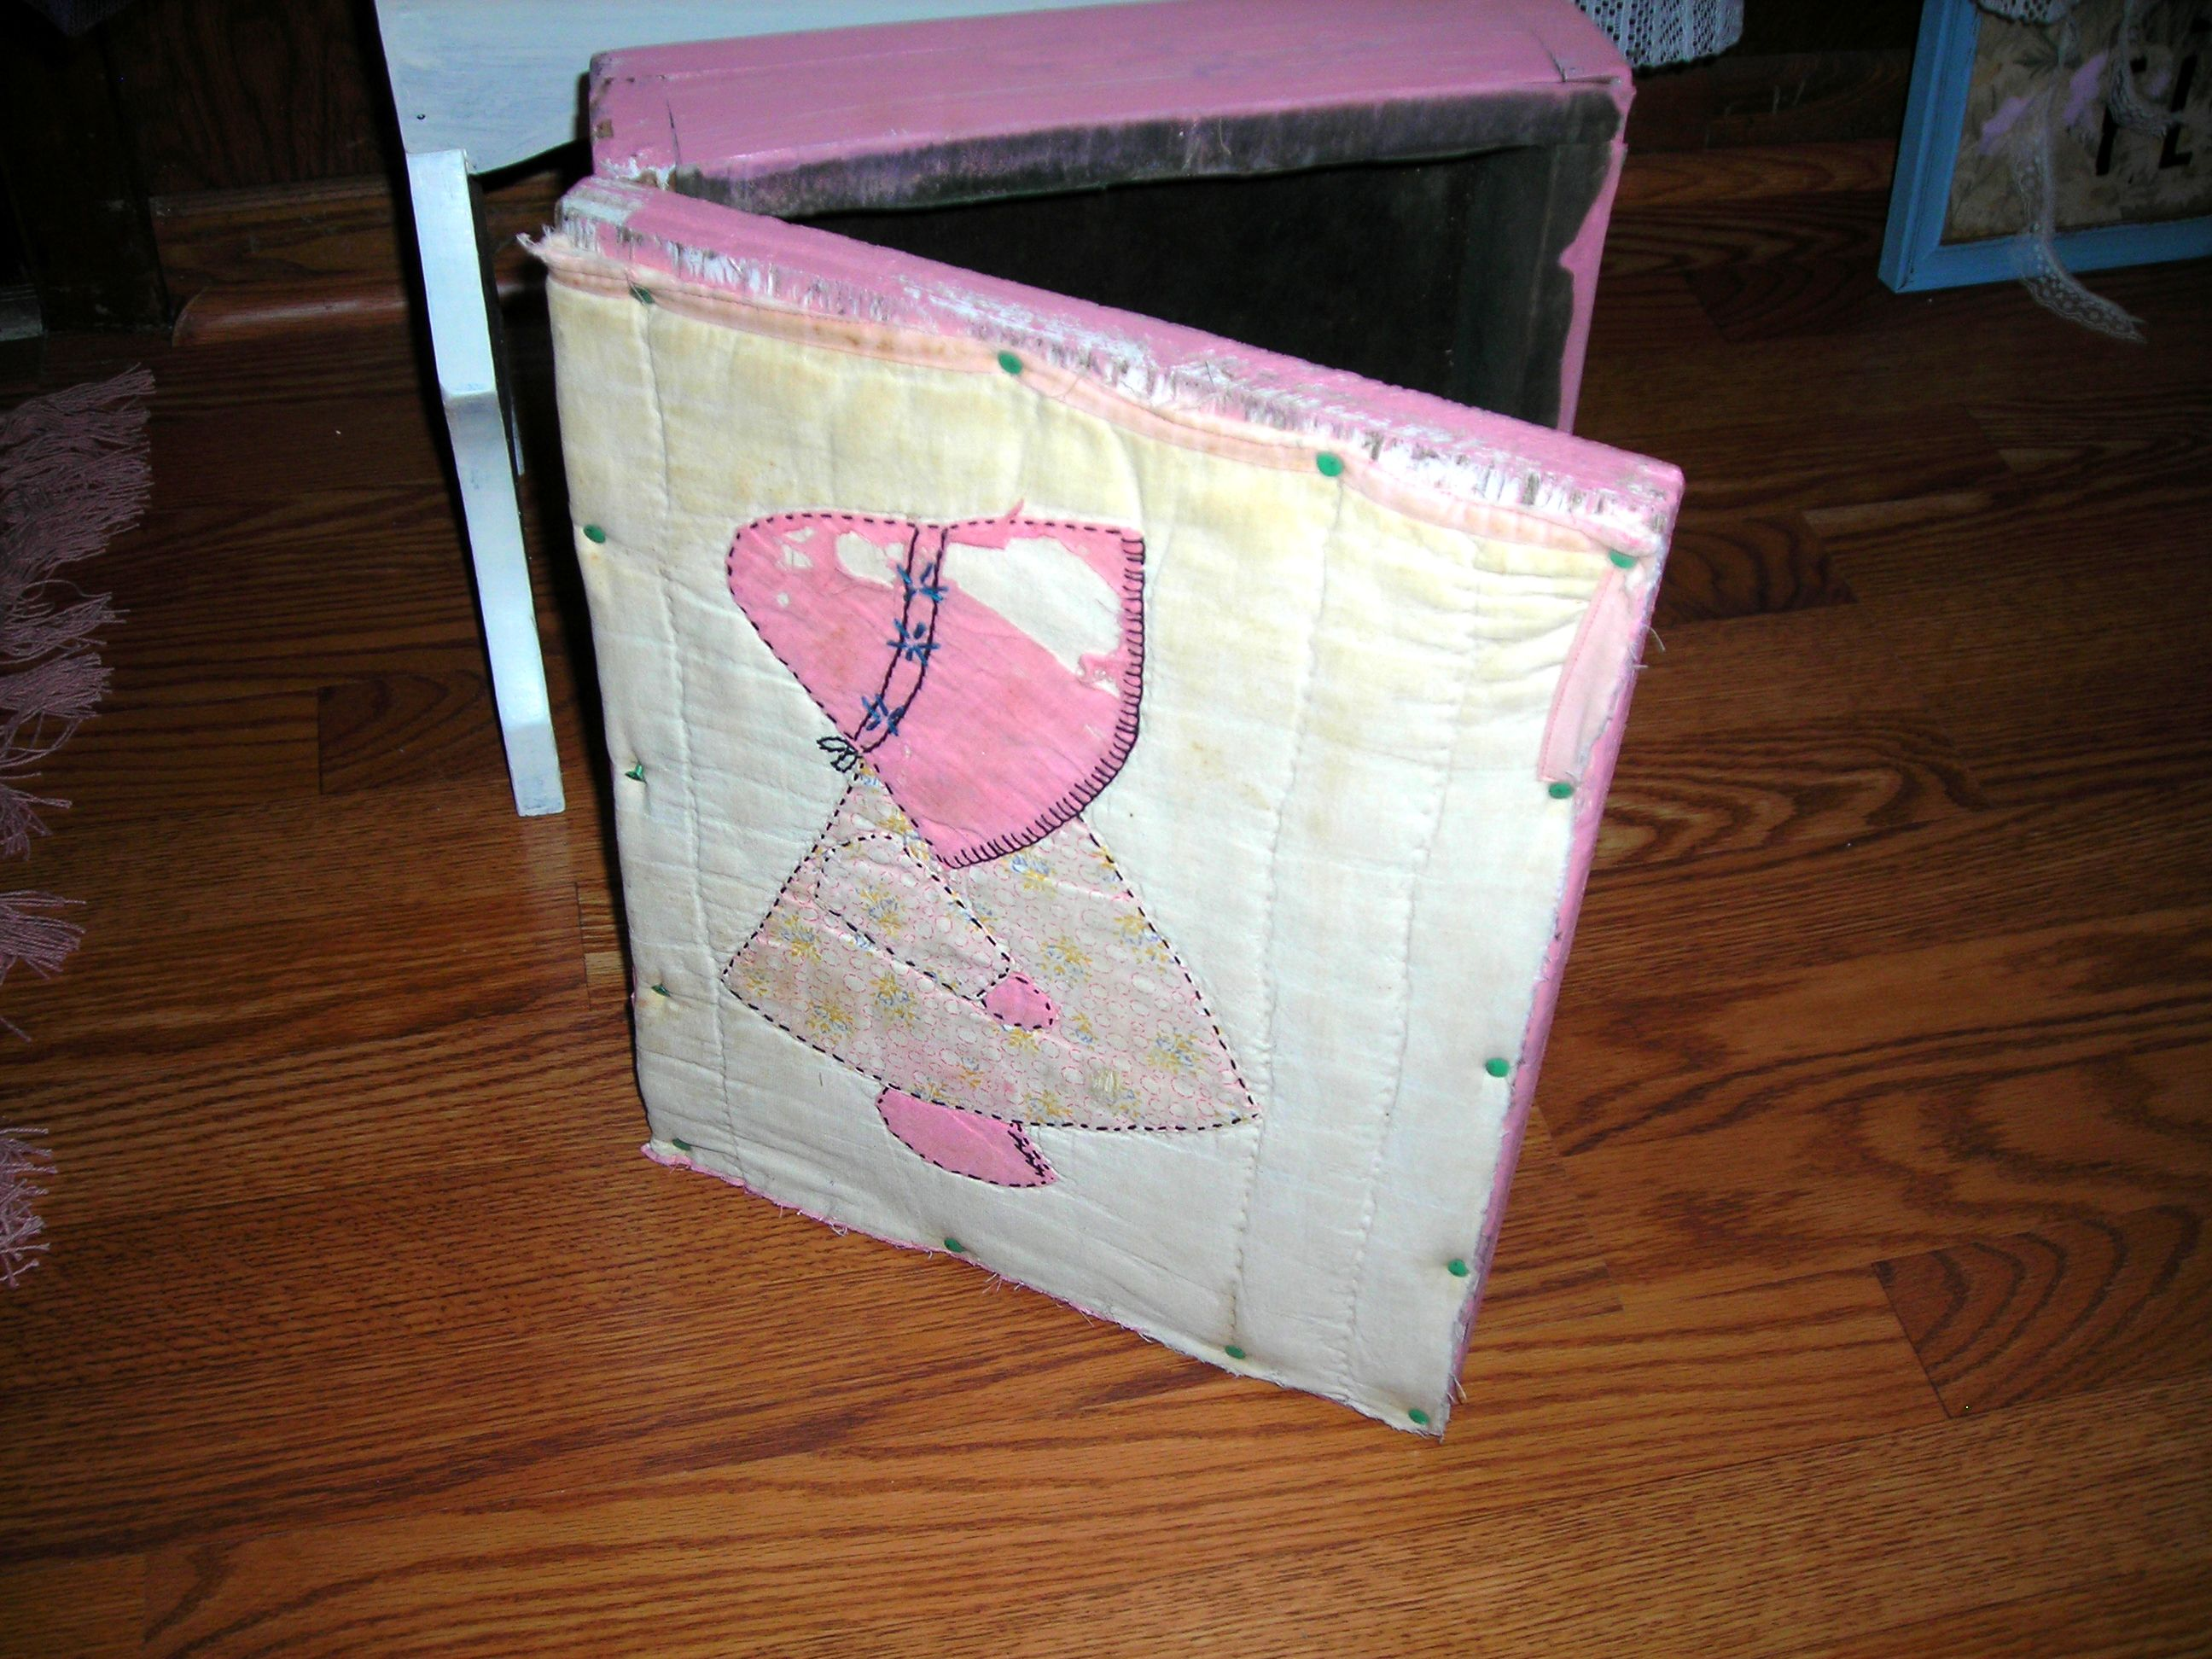 it's an old box, painted pink with an old quilt piece on the cover.